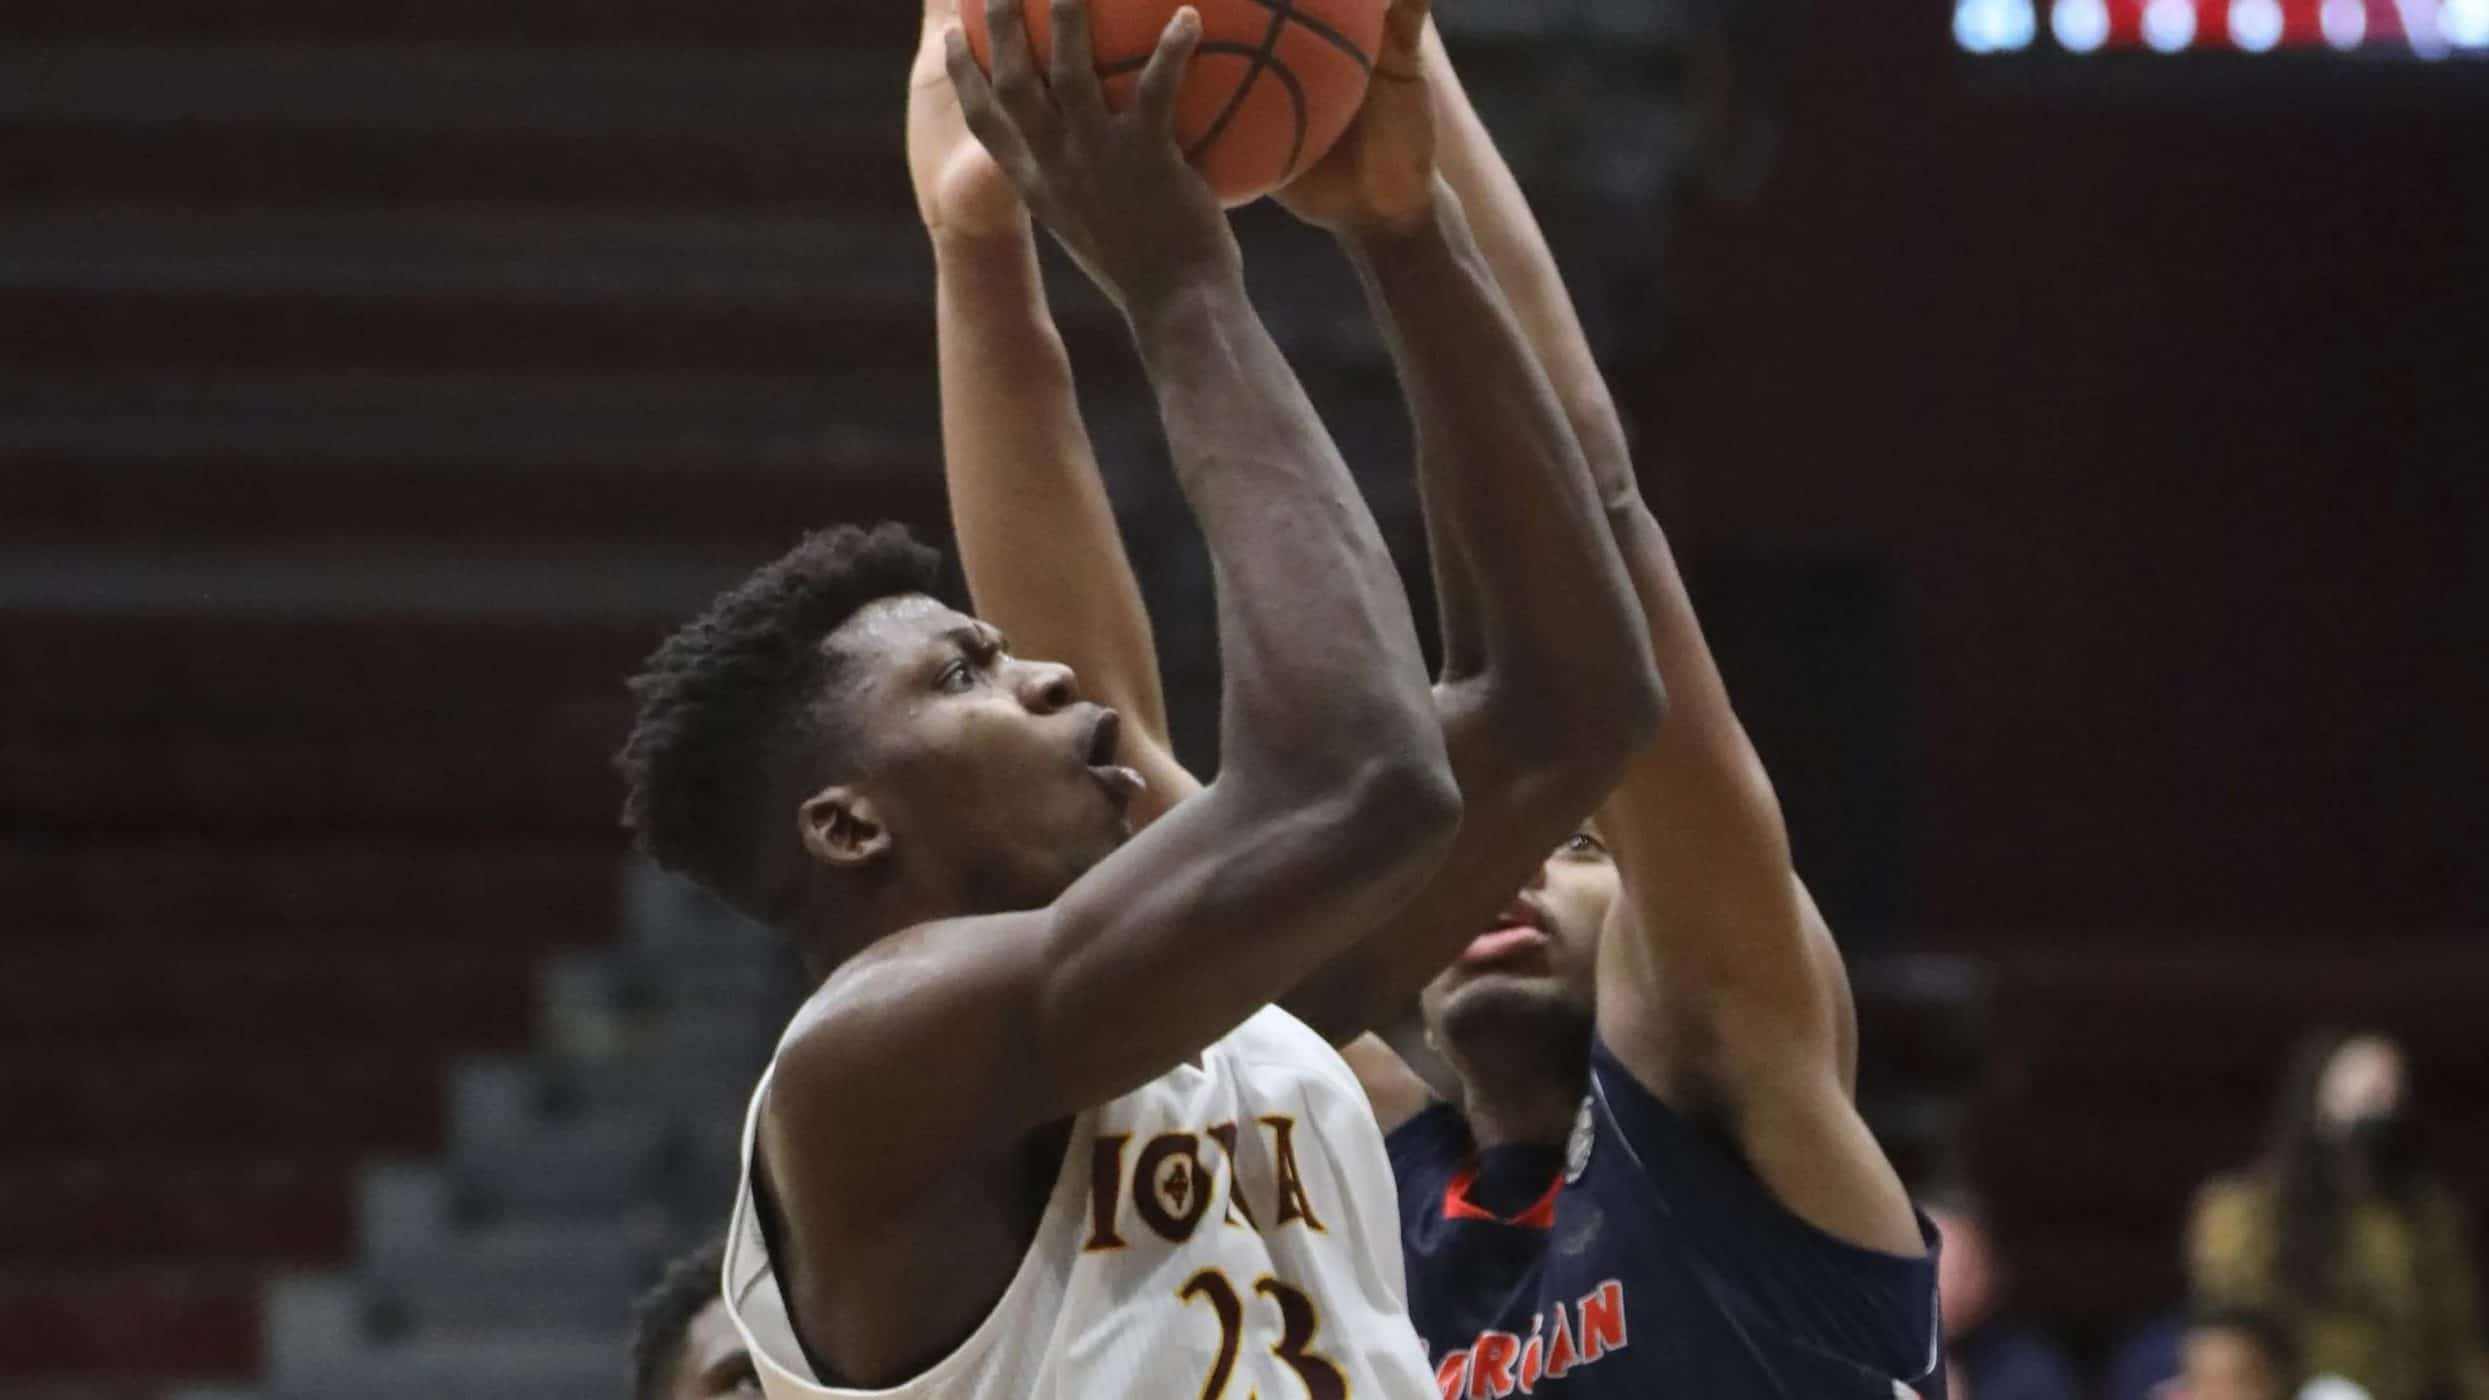 Iona March Madness 2021